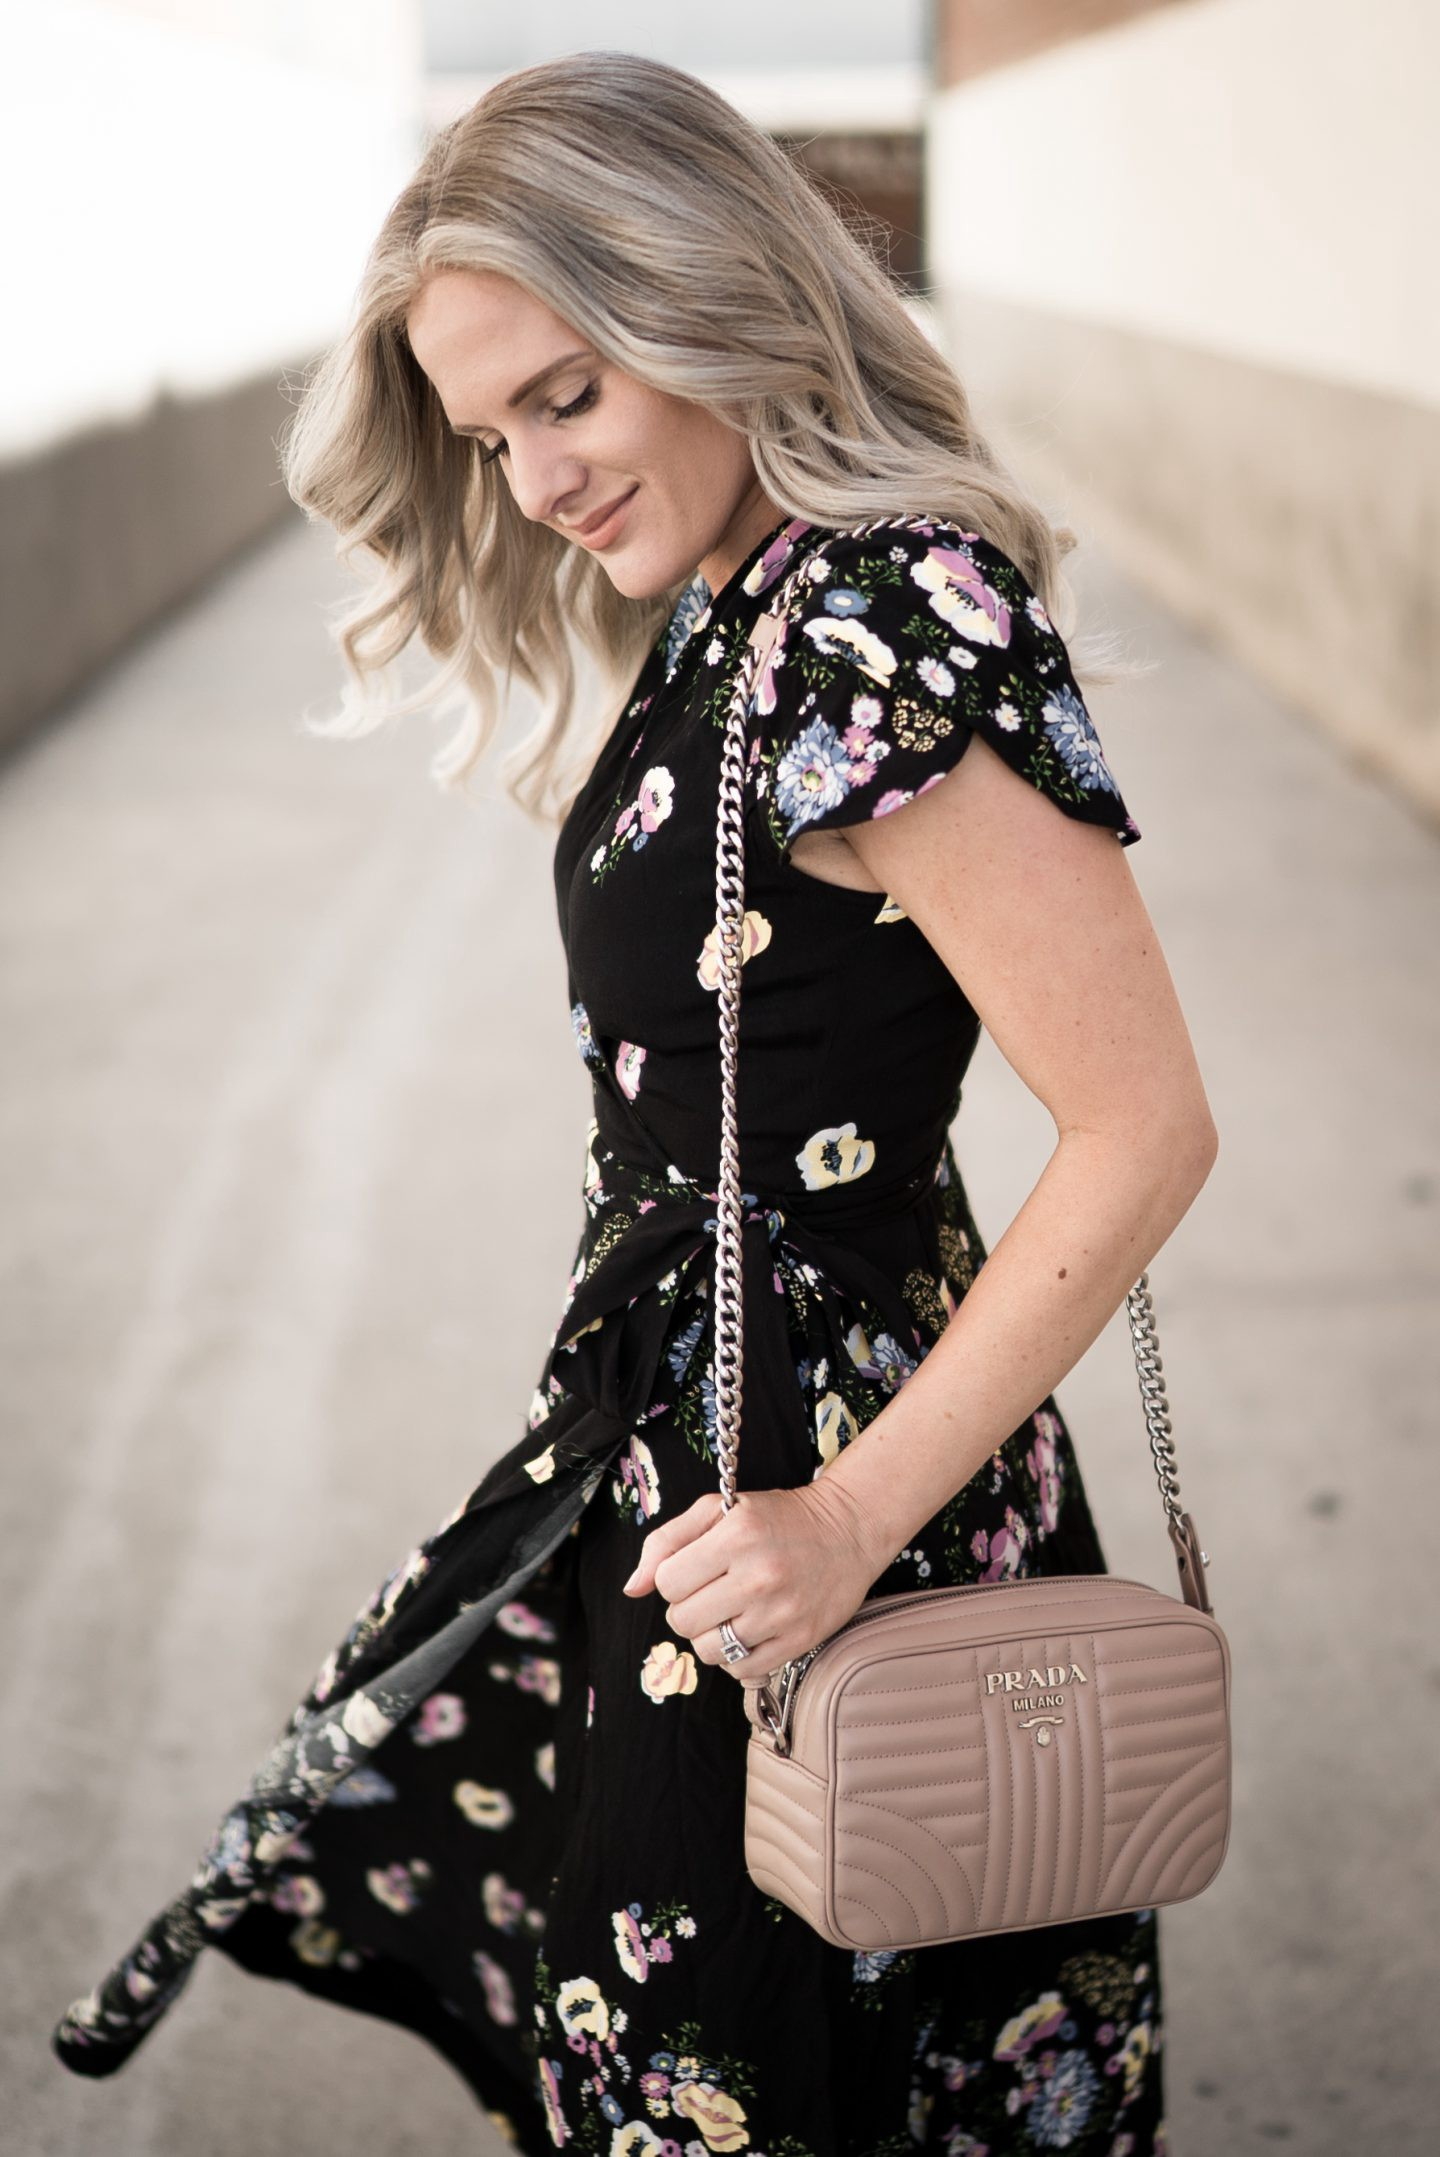 A Stunning Floral Maxi Dress for Date Night featured by popular Orange County fashion blogger, Dress Me Blonde